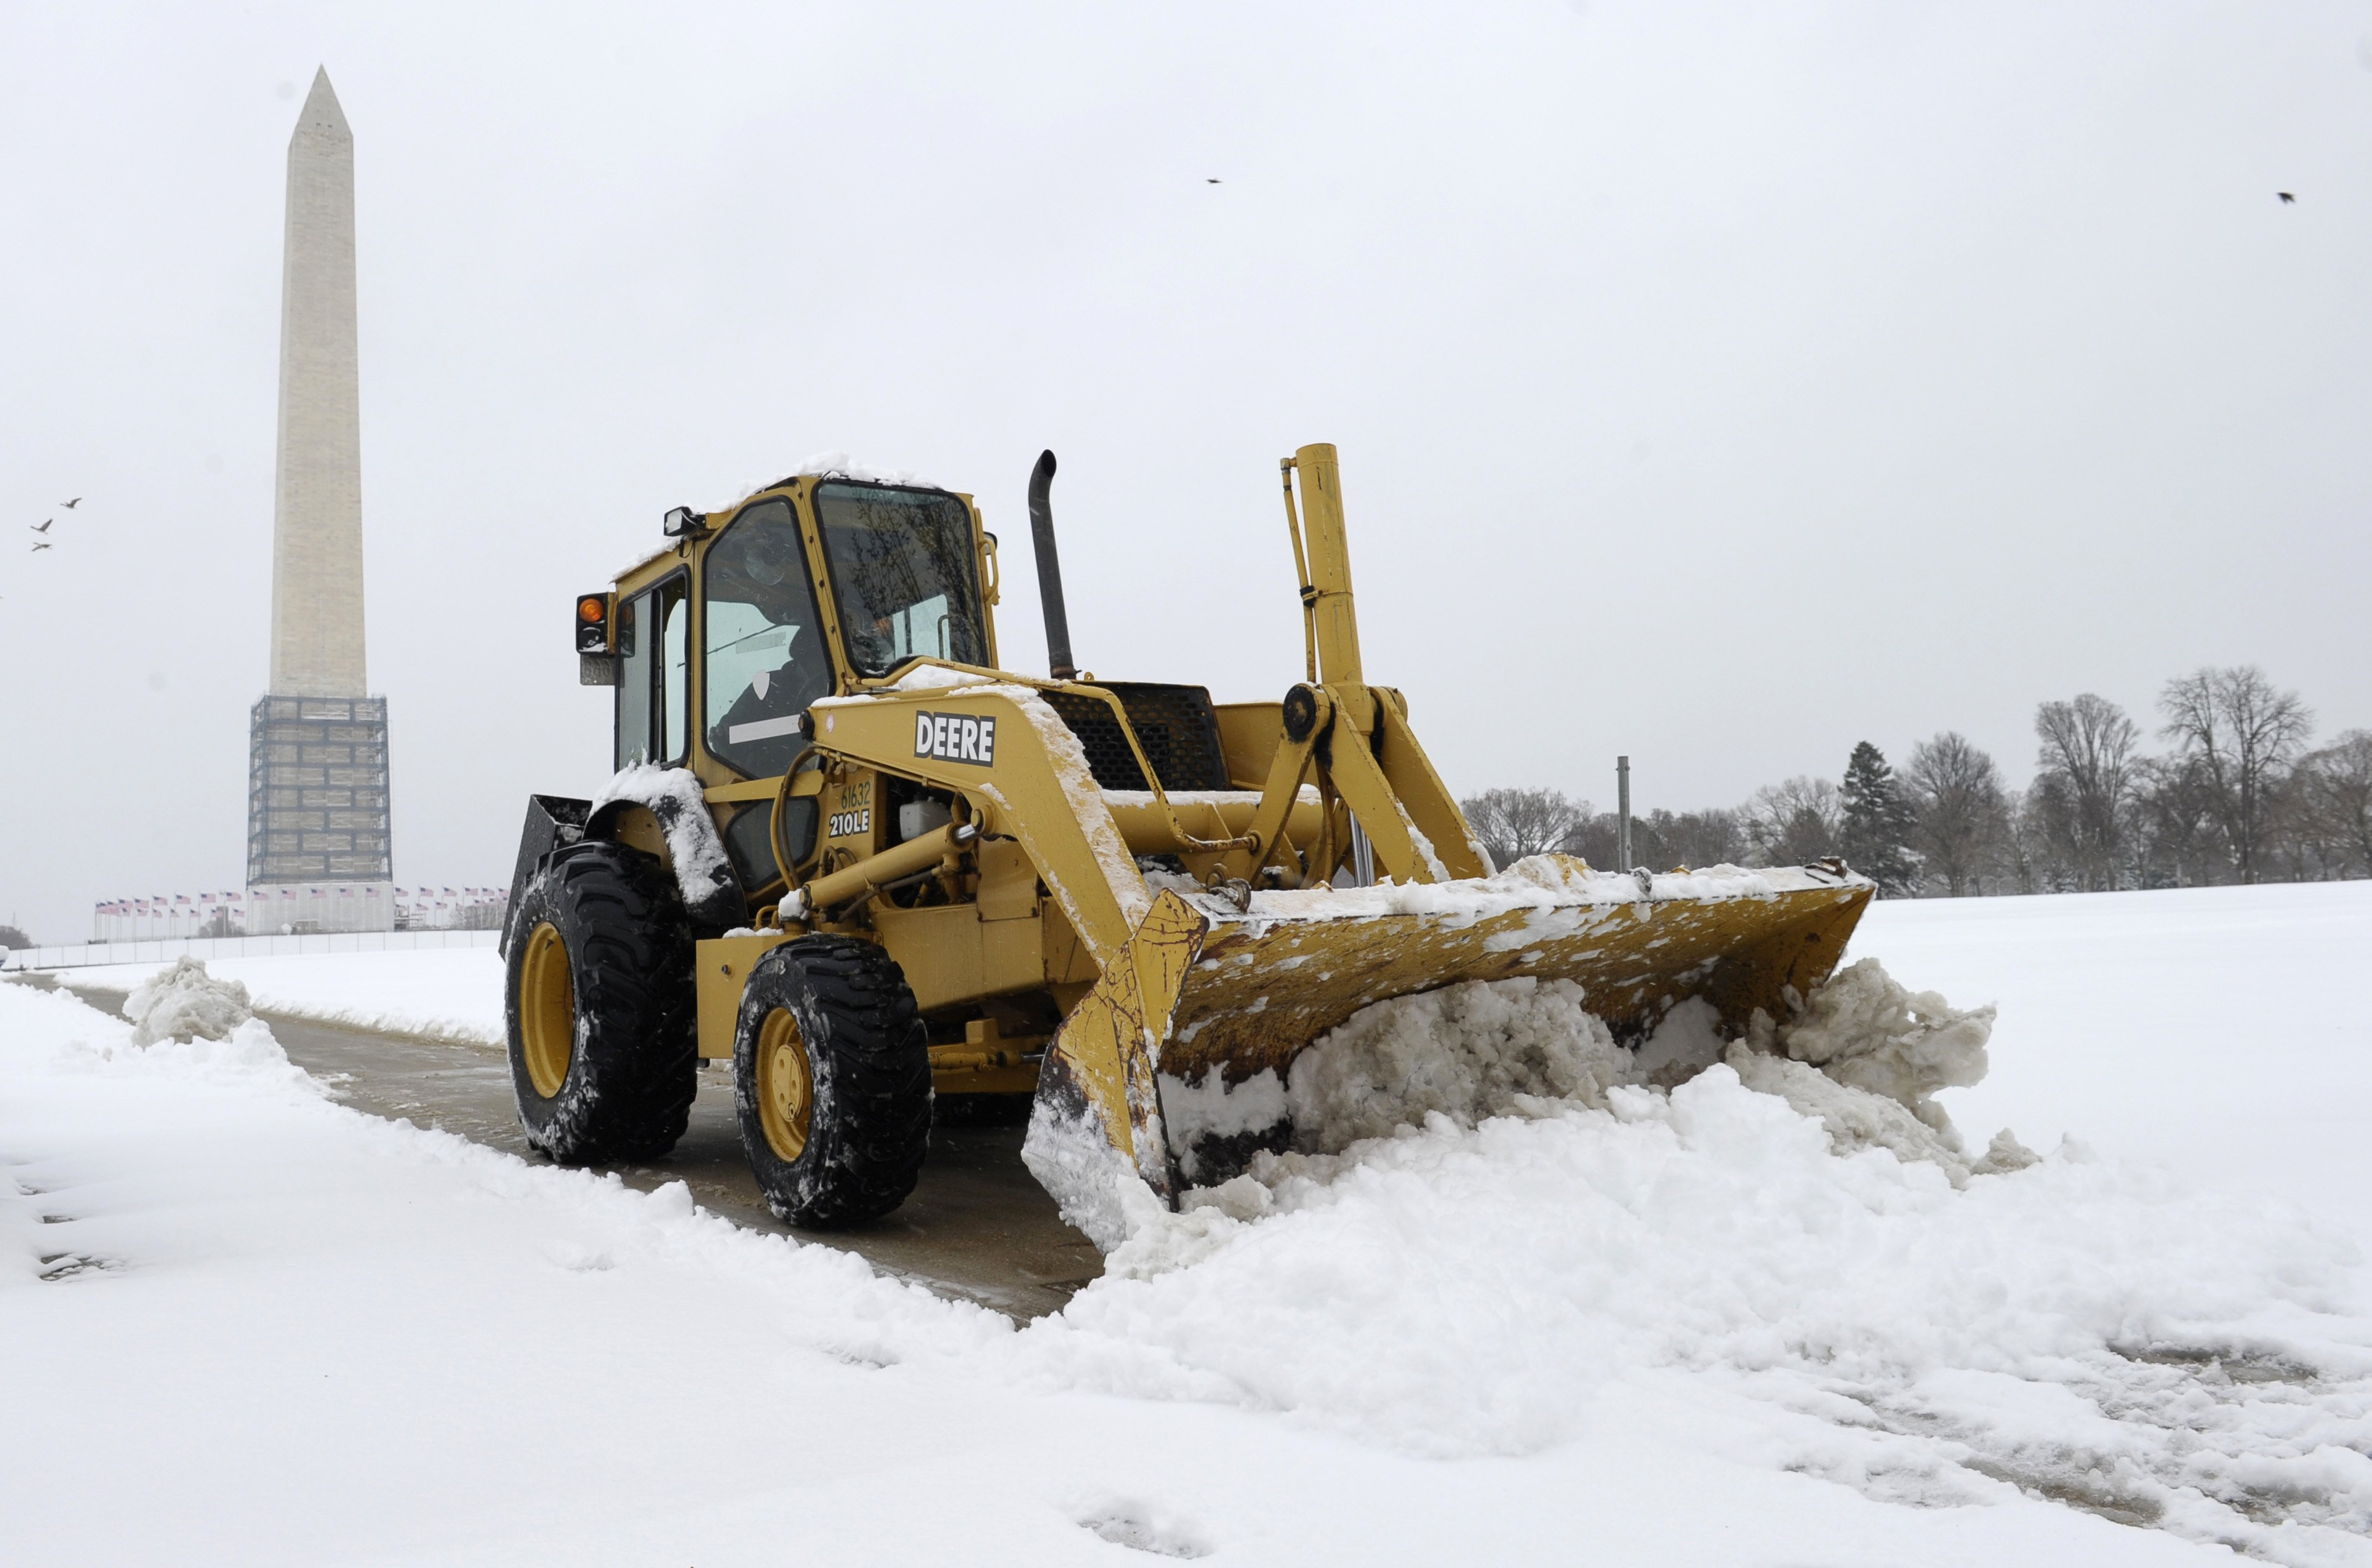 A snow plow clears the area around the Washington Monument in Washington, D.C. on March 17, 2014.